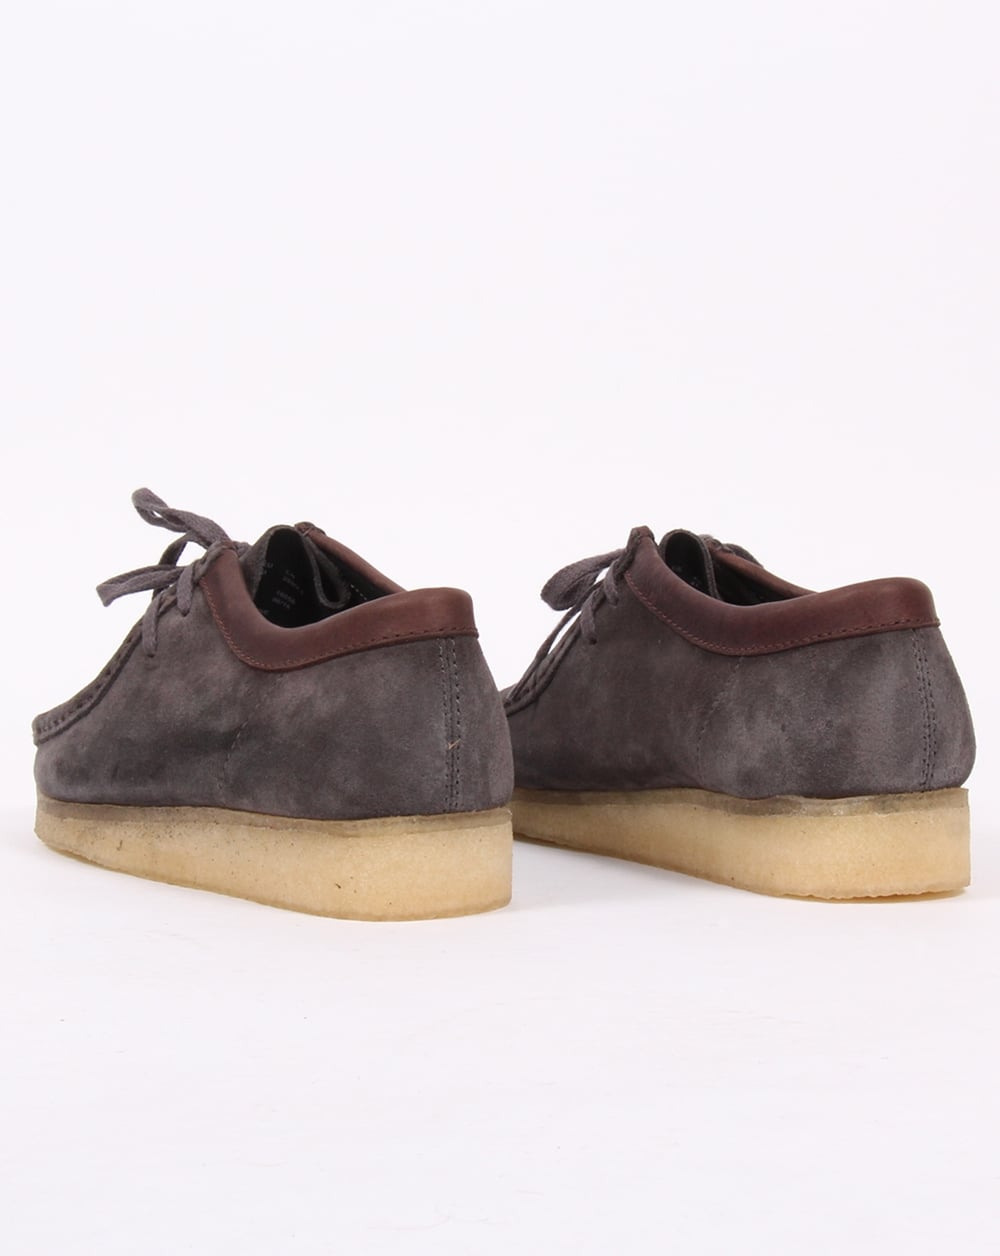 Tannery Shoes On Sale